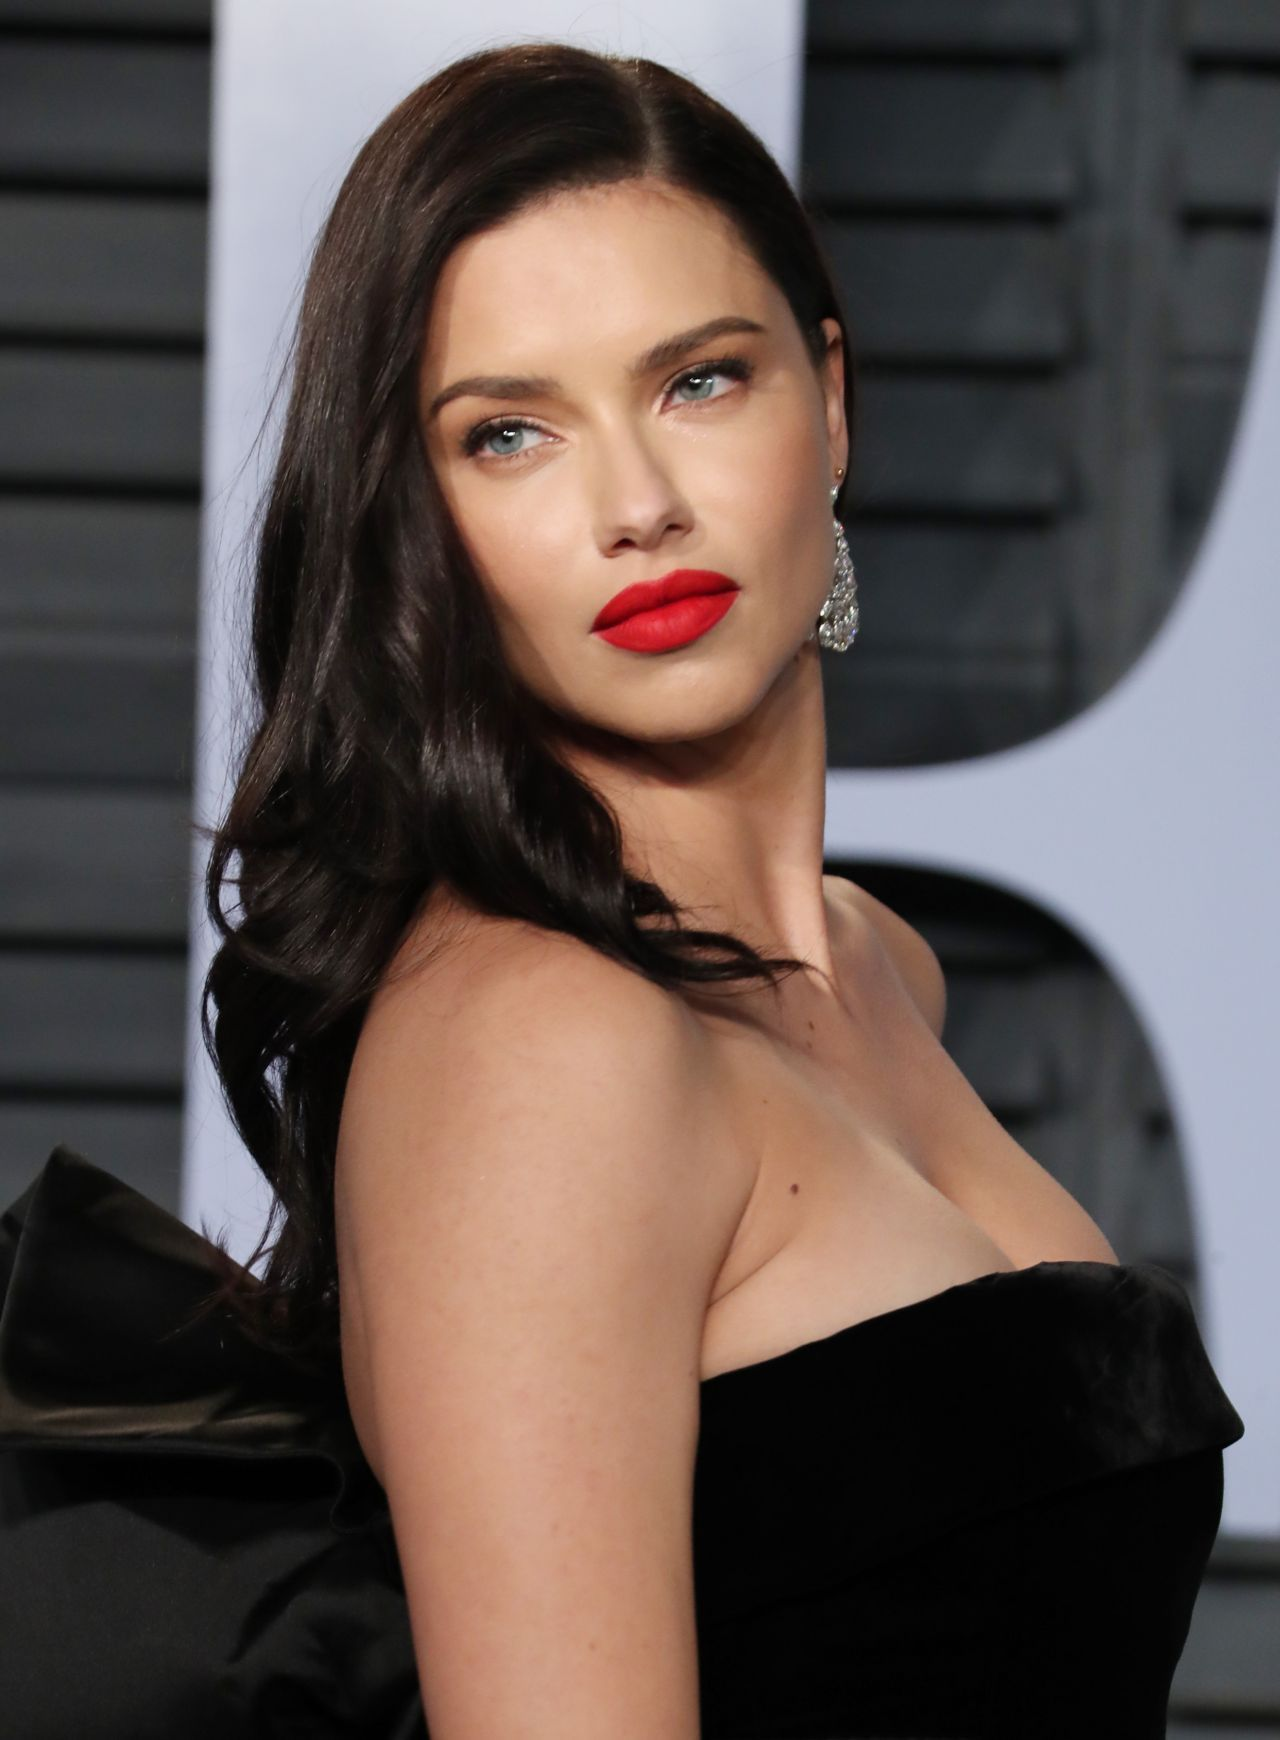 Amber heard wallpapers,Kim kardashian nipples exposed see through top Porn clips Iselin steiro the last magazine spring 2011 by daniel jackson lq photo shoot,Scott stapp arrested for being boozed up at lax